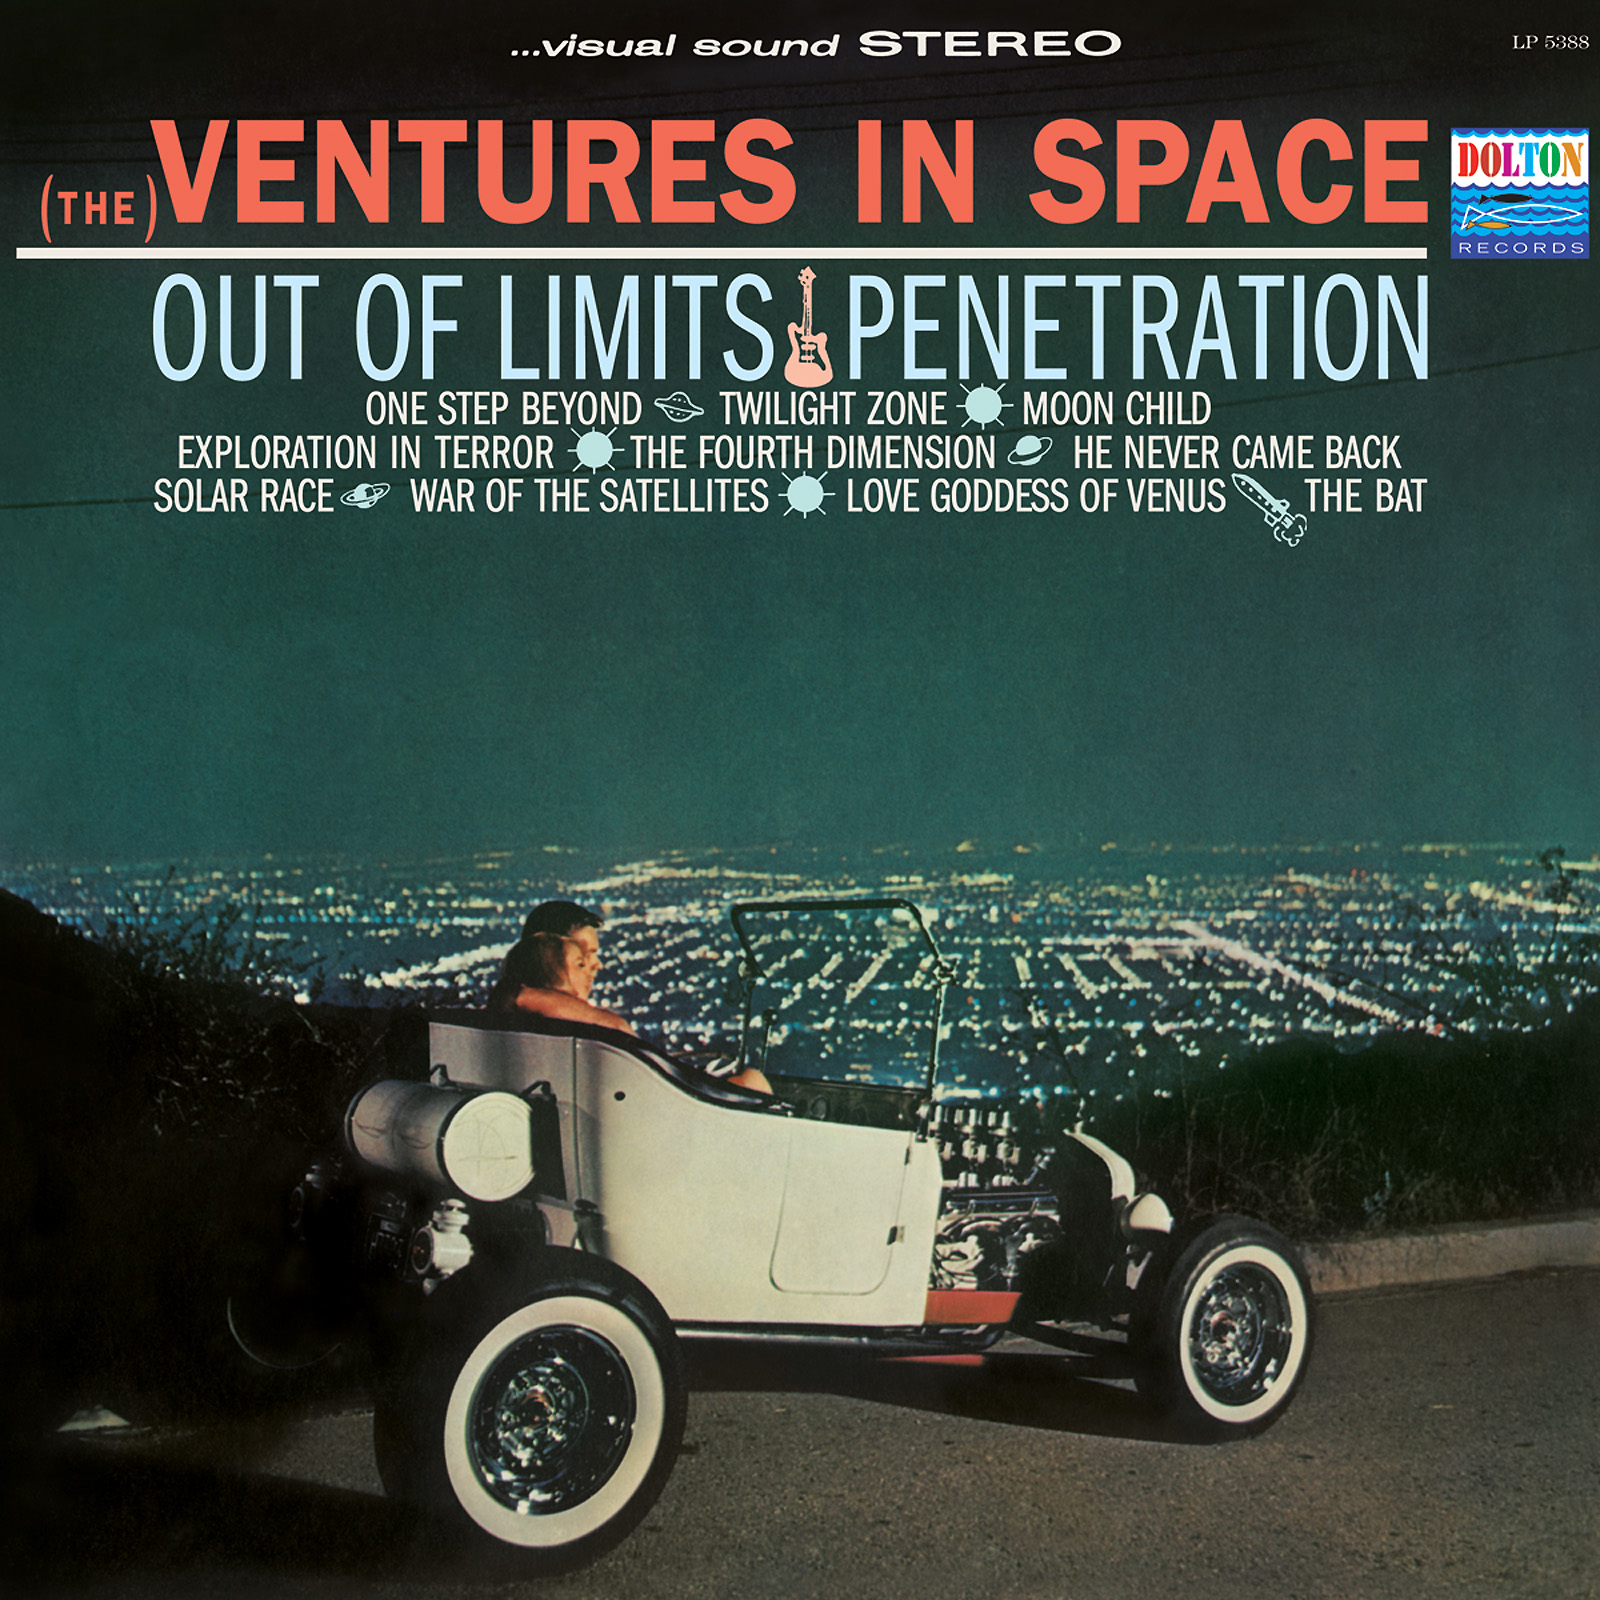 Ventures, The - Ventures in Space LIMITED EDITION Colored Vinyl LP